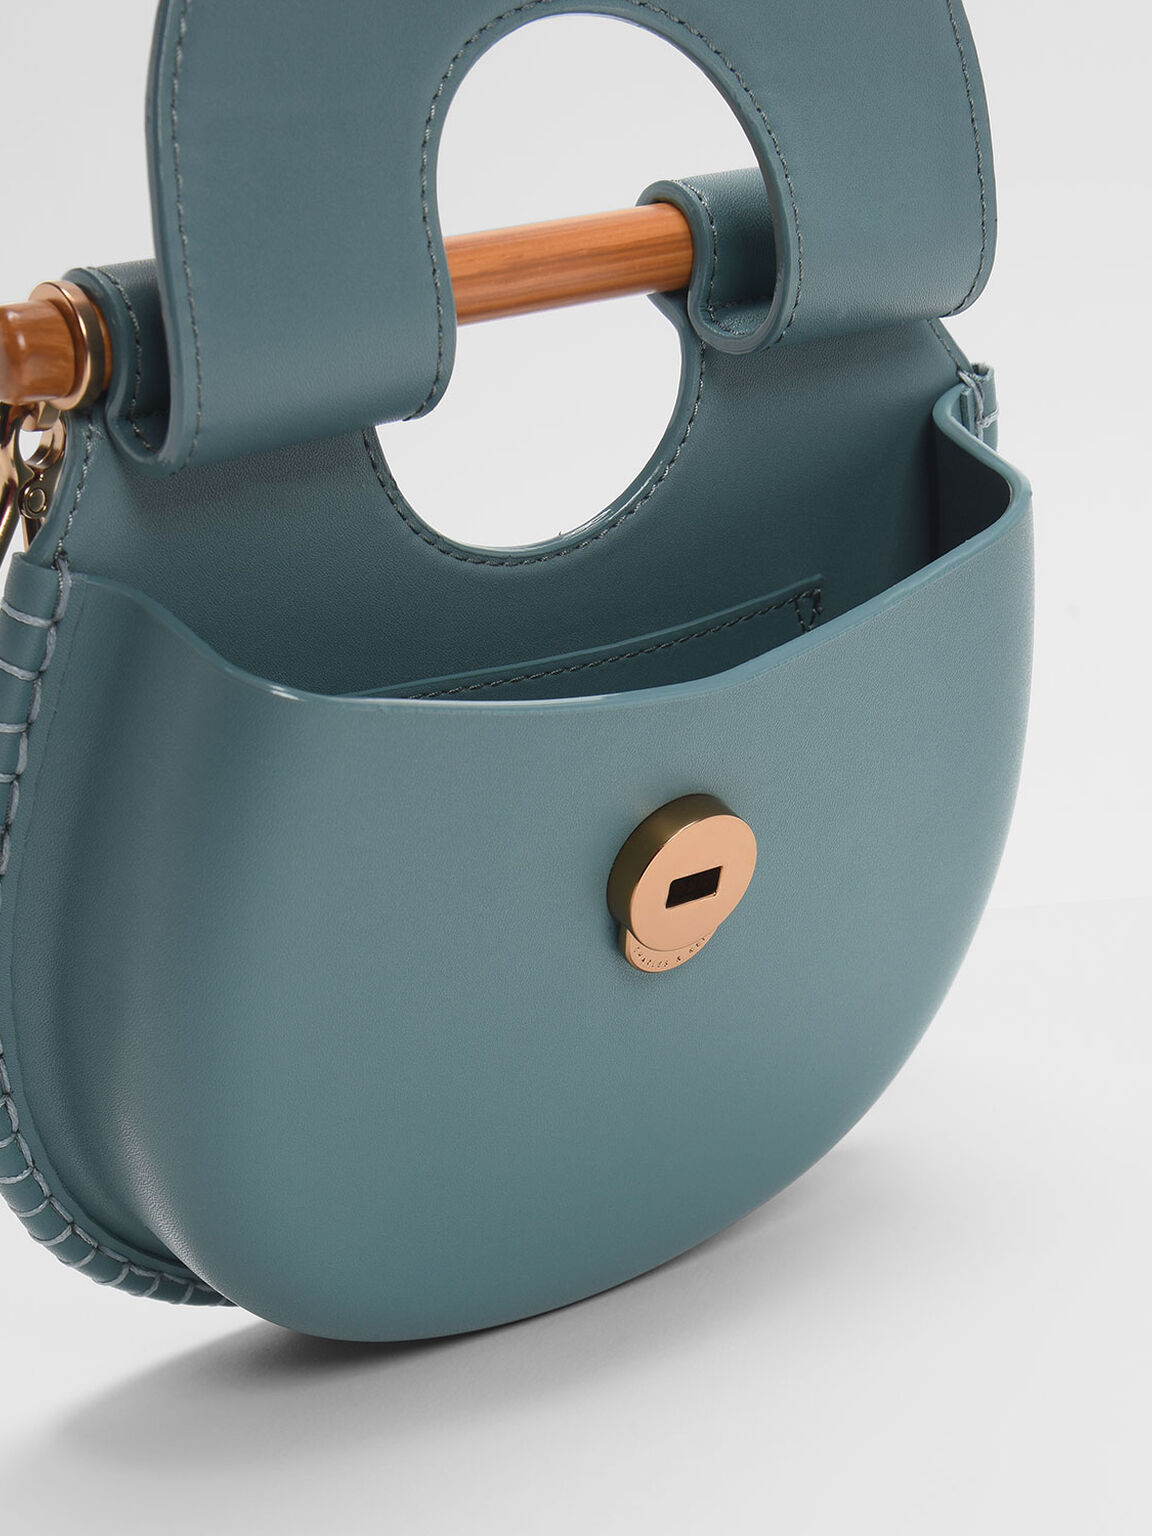 Wood-Effect Handle Whipstitch Trim Bag, Teal, hi-res